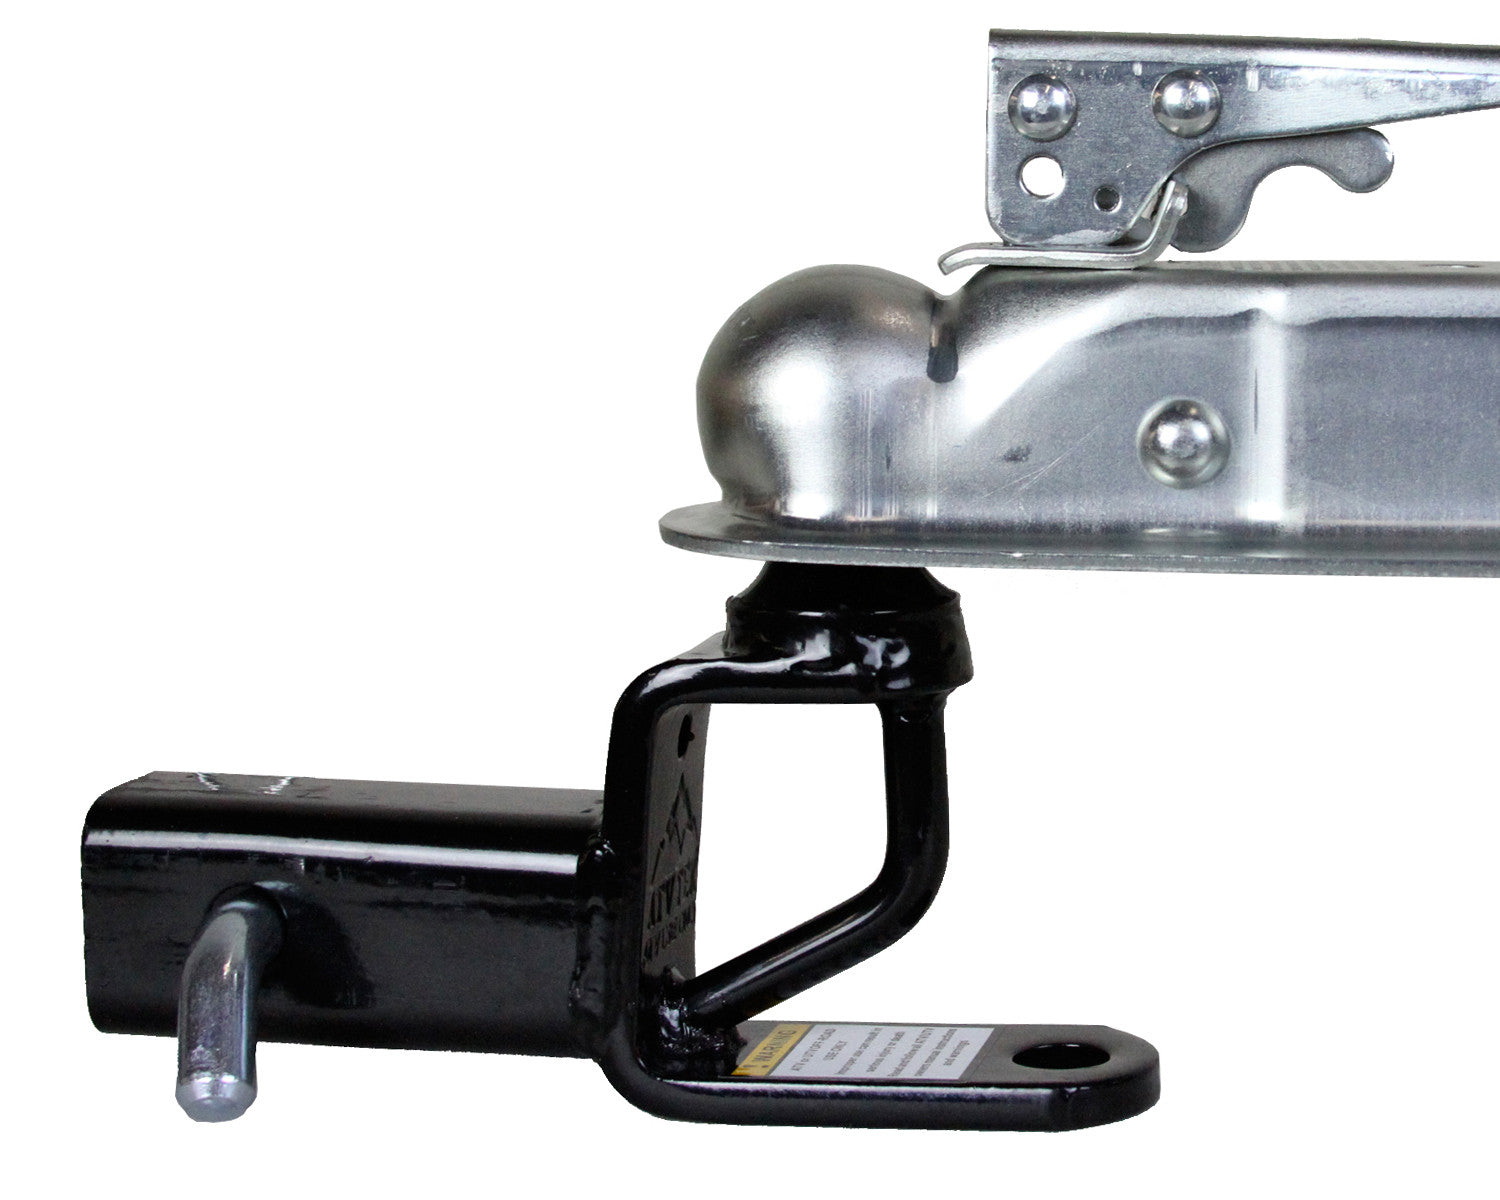 2 Ball Hitch >> Trio Hd Receiver Hitch W 2 Ball Mount Trh1